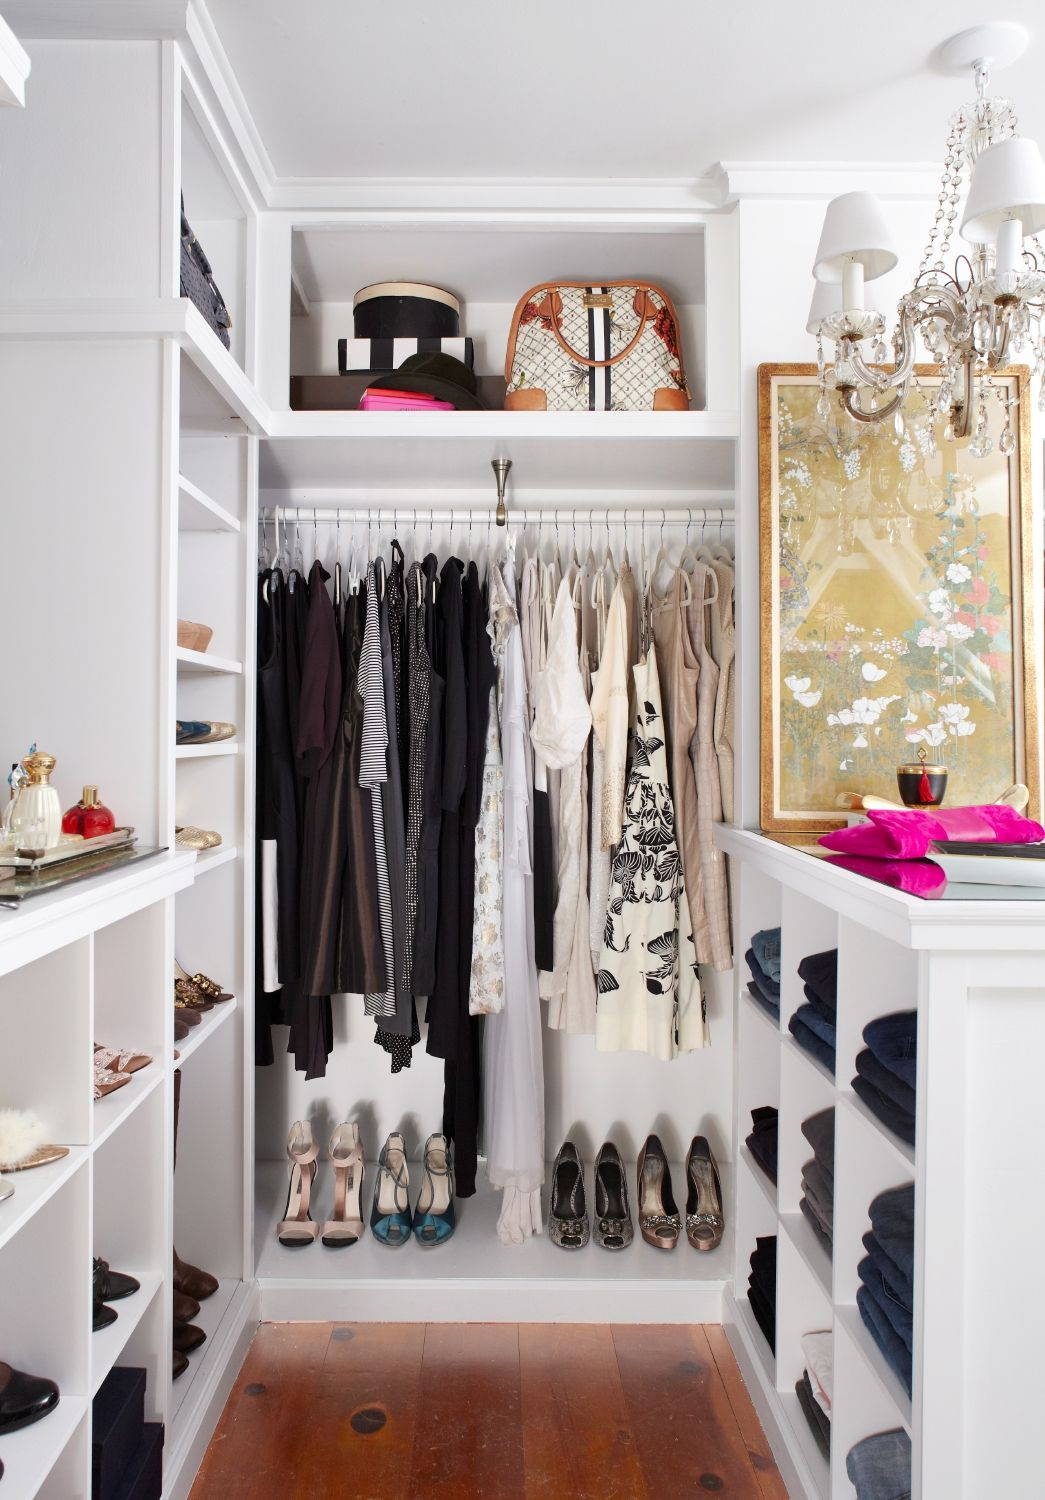 12 small walk in closet ideas and organizer designs for Walk in closets designs ideas